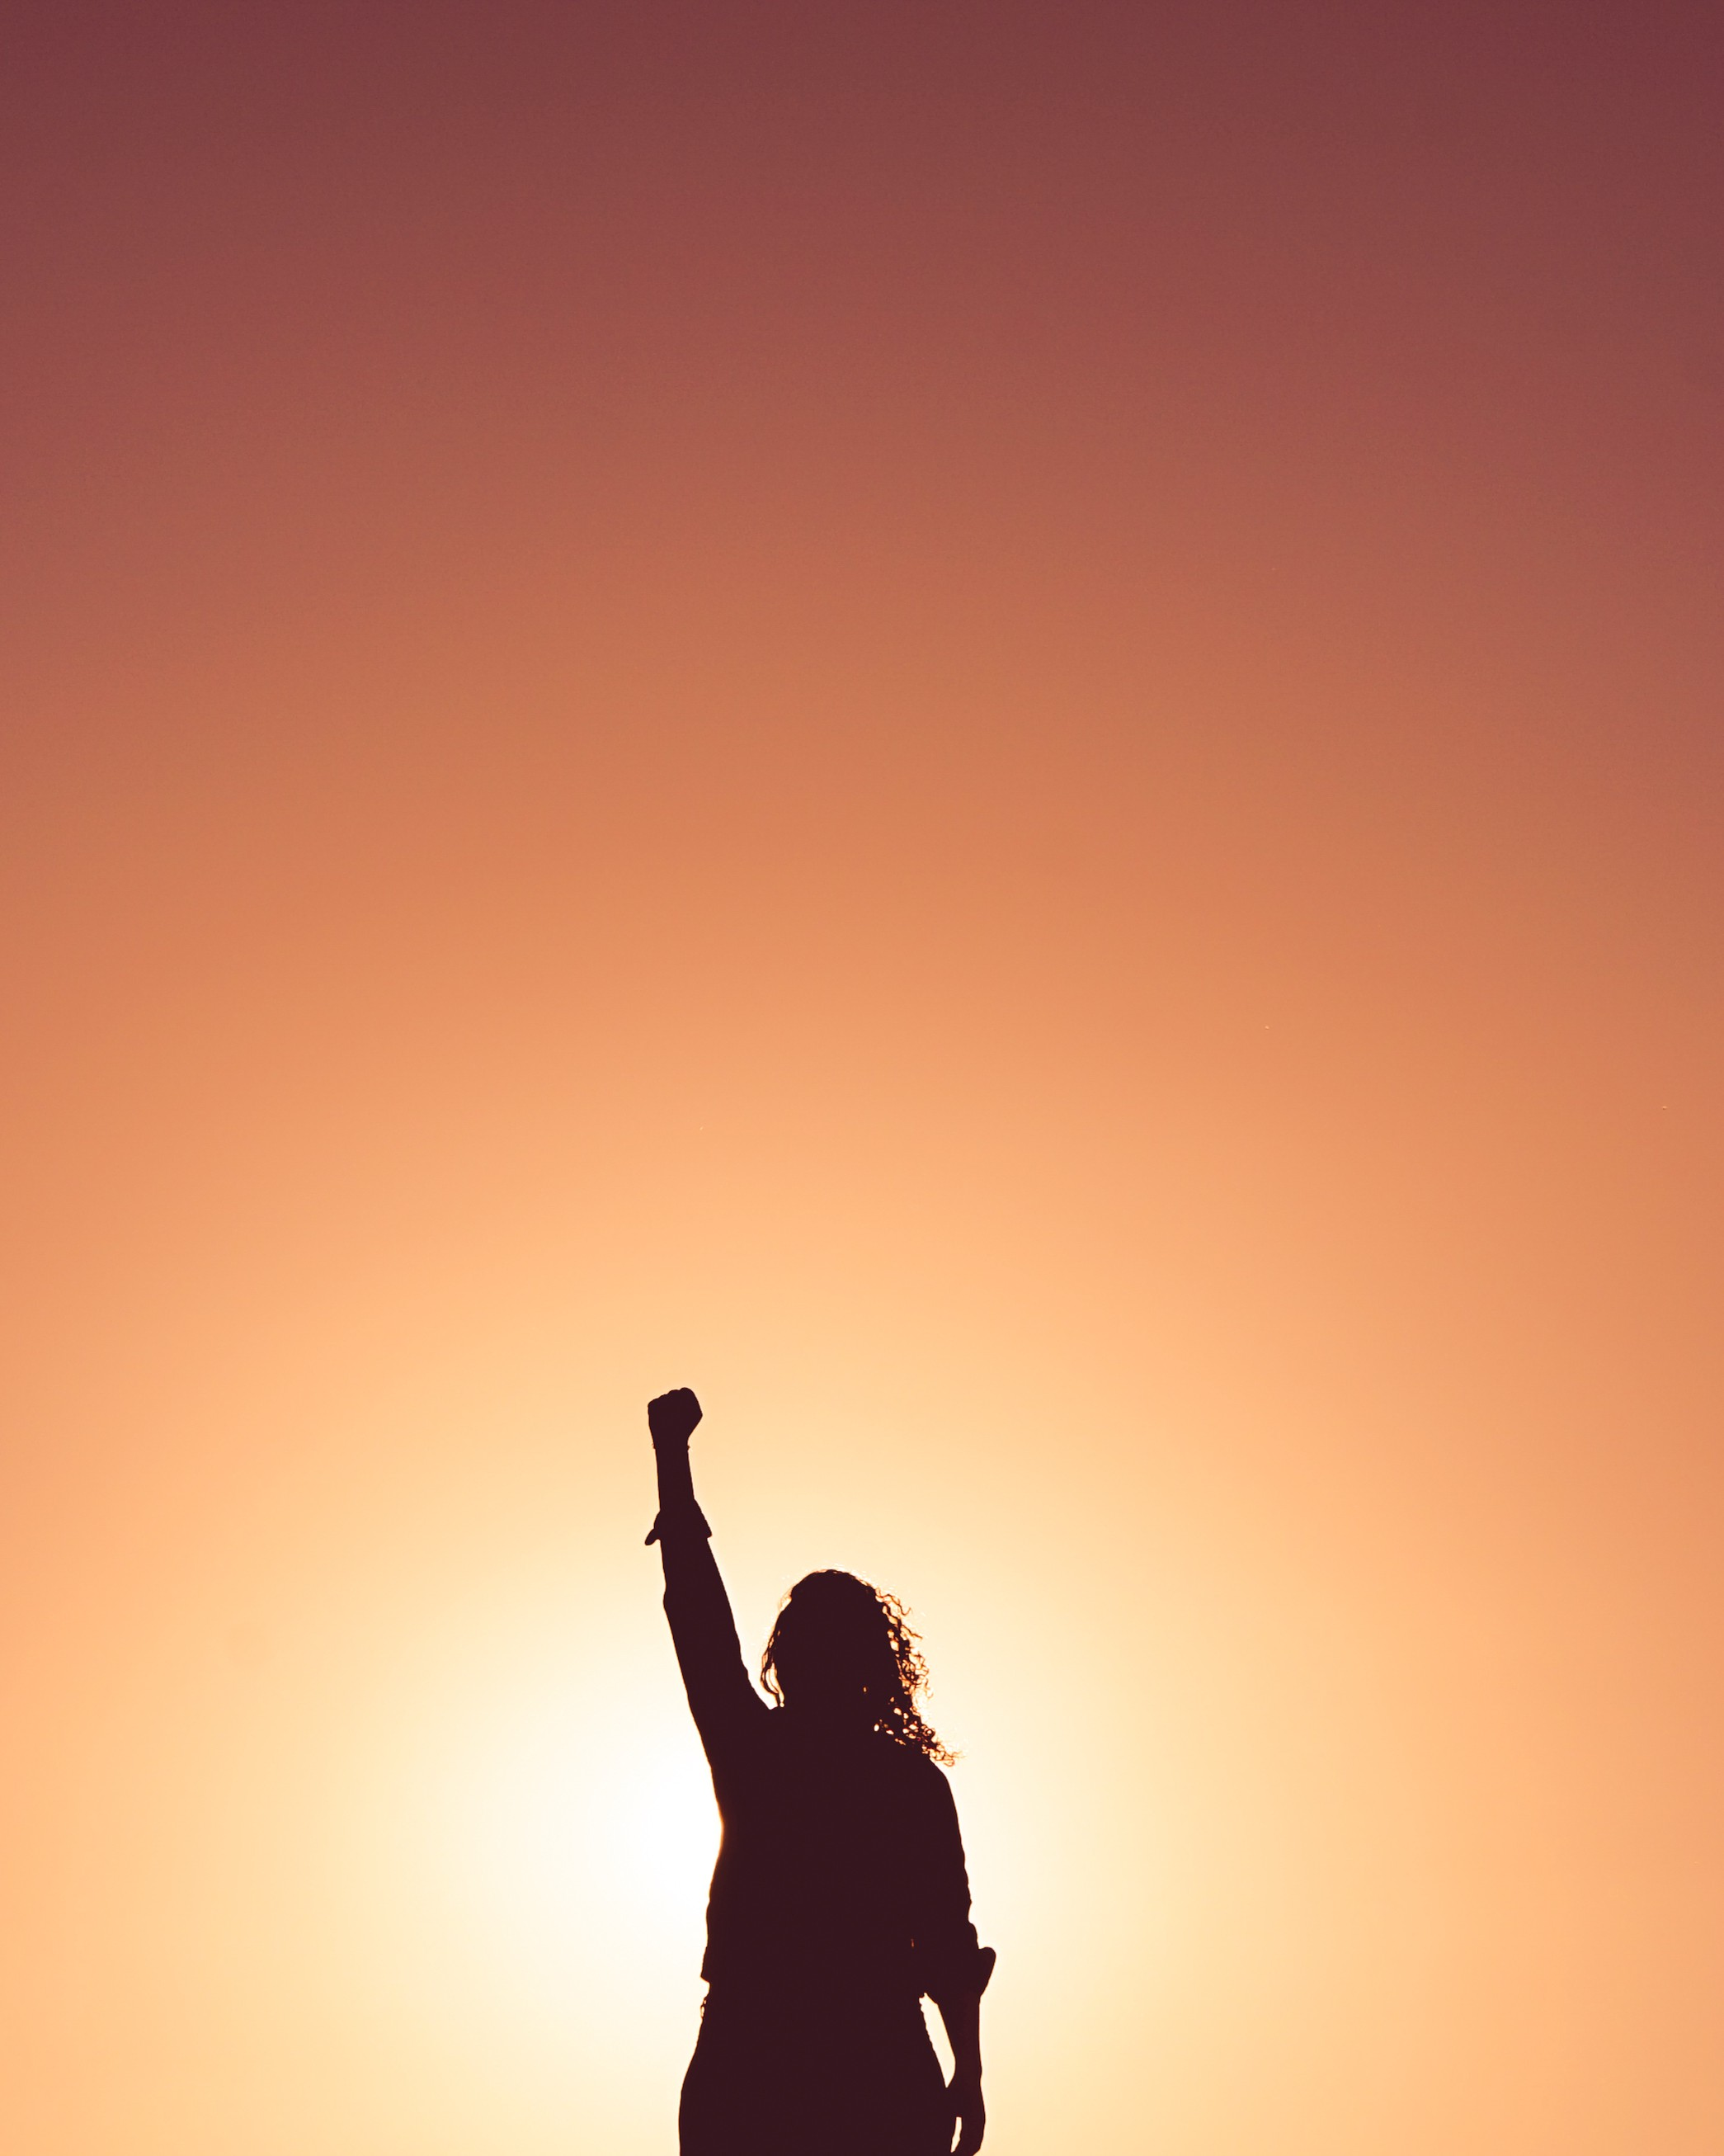 motivational image of woman with fist raised